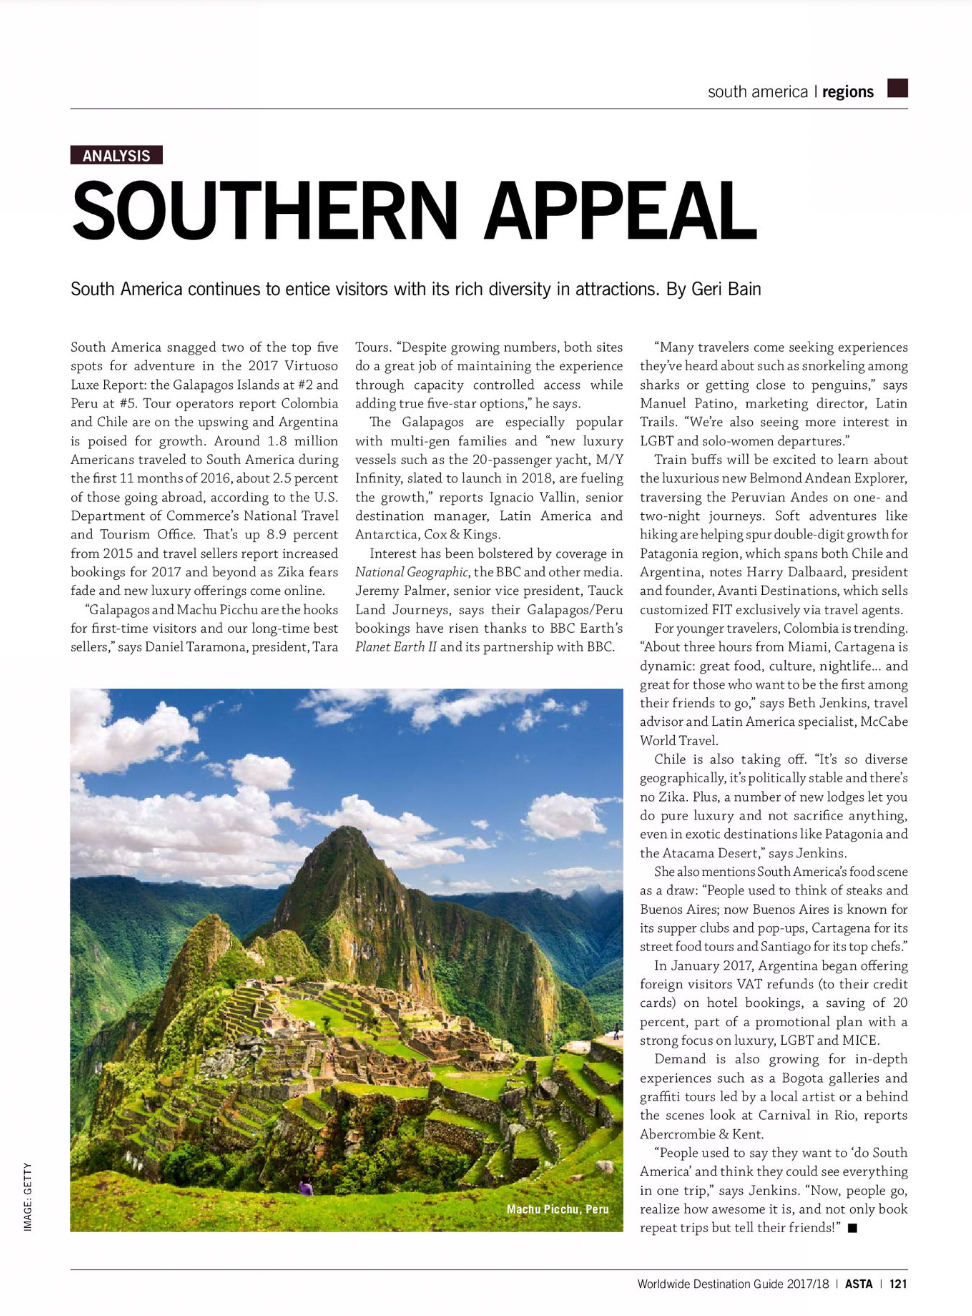 ASTA Worldwide Destination Guide 2017/2018 | Southern Appeal